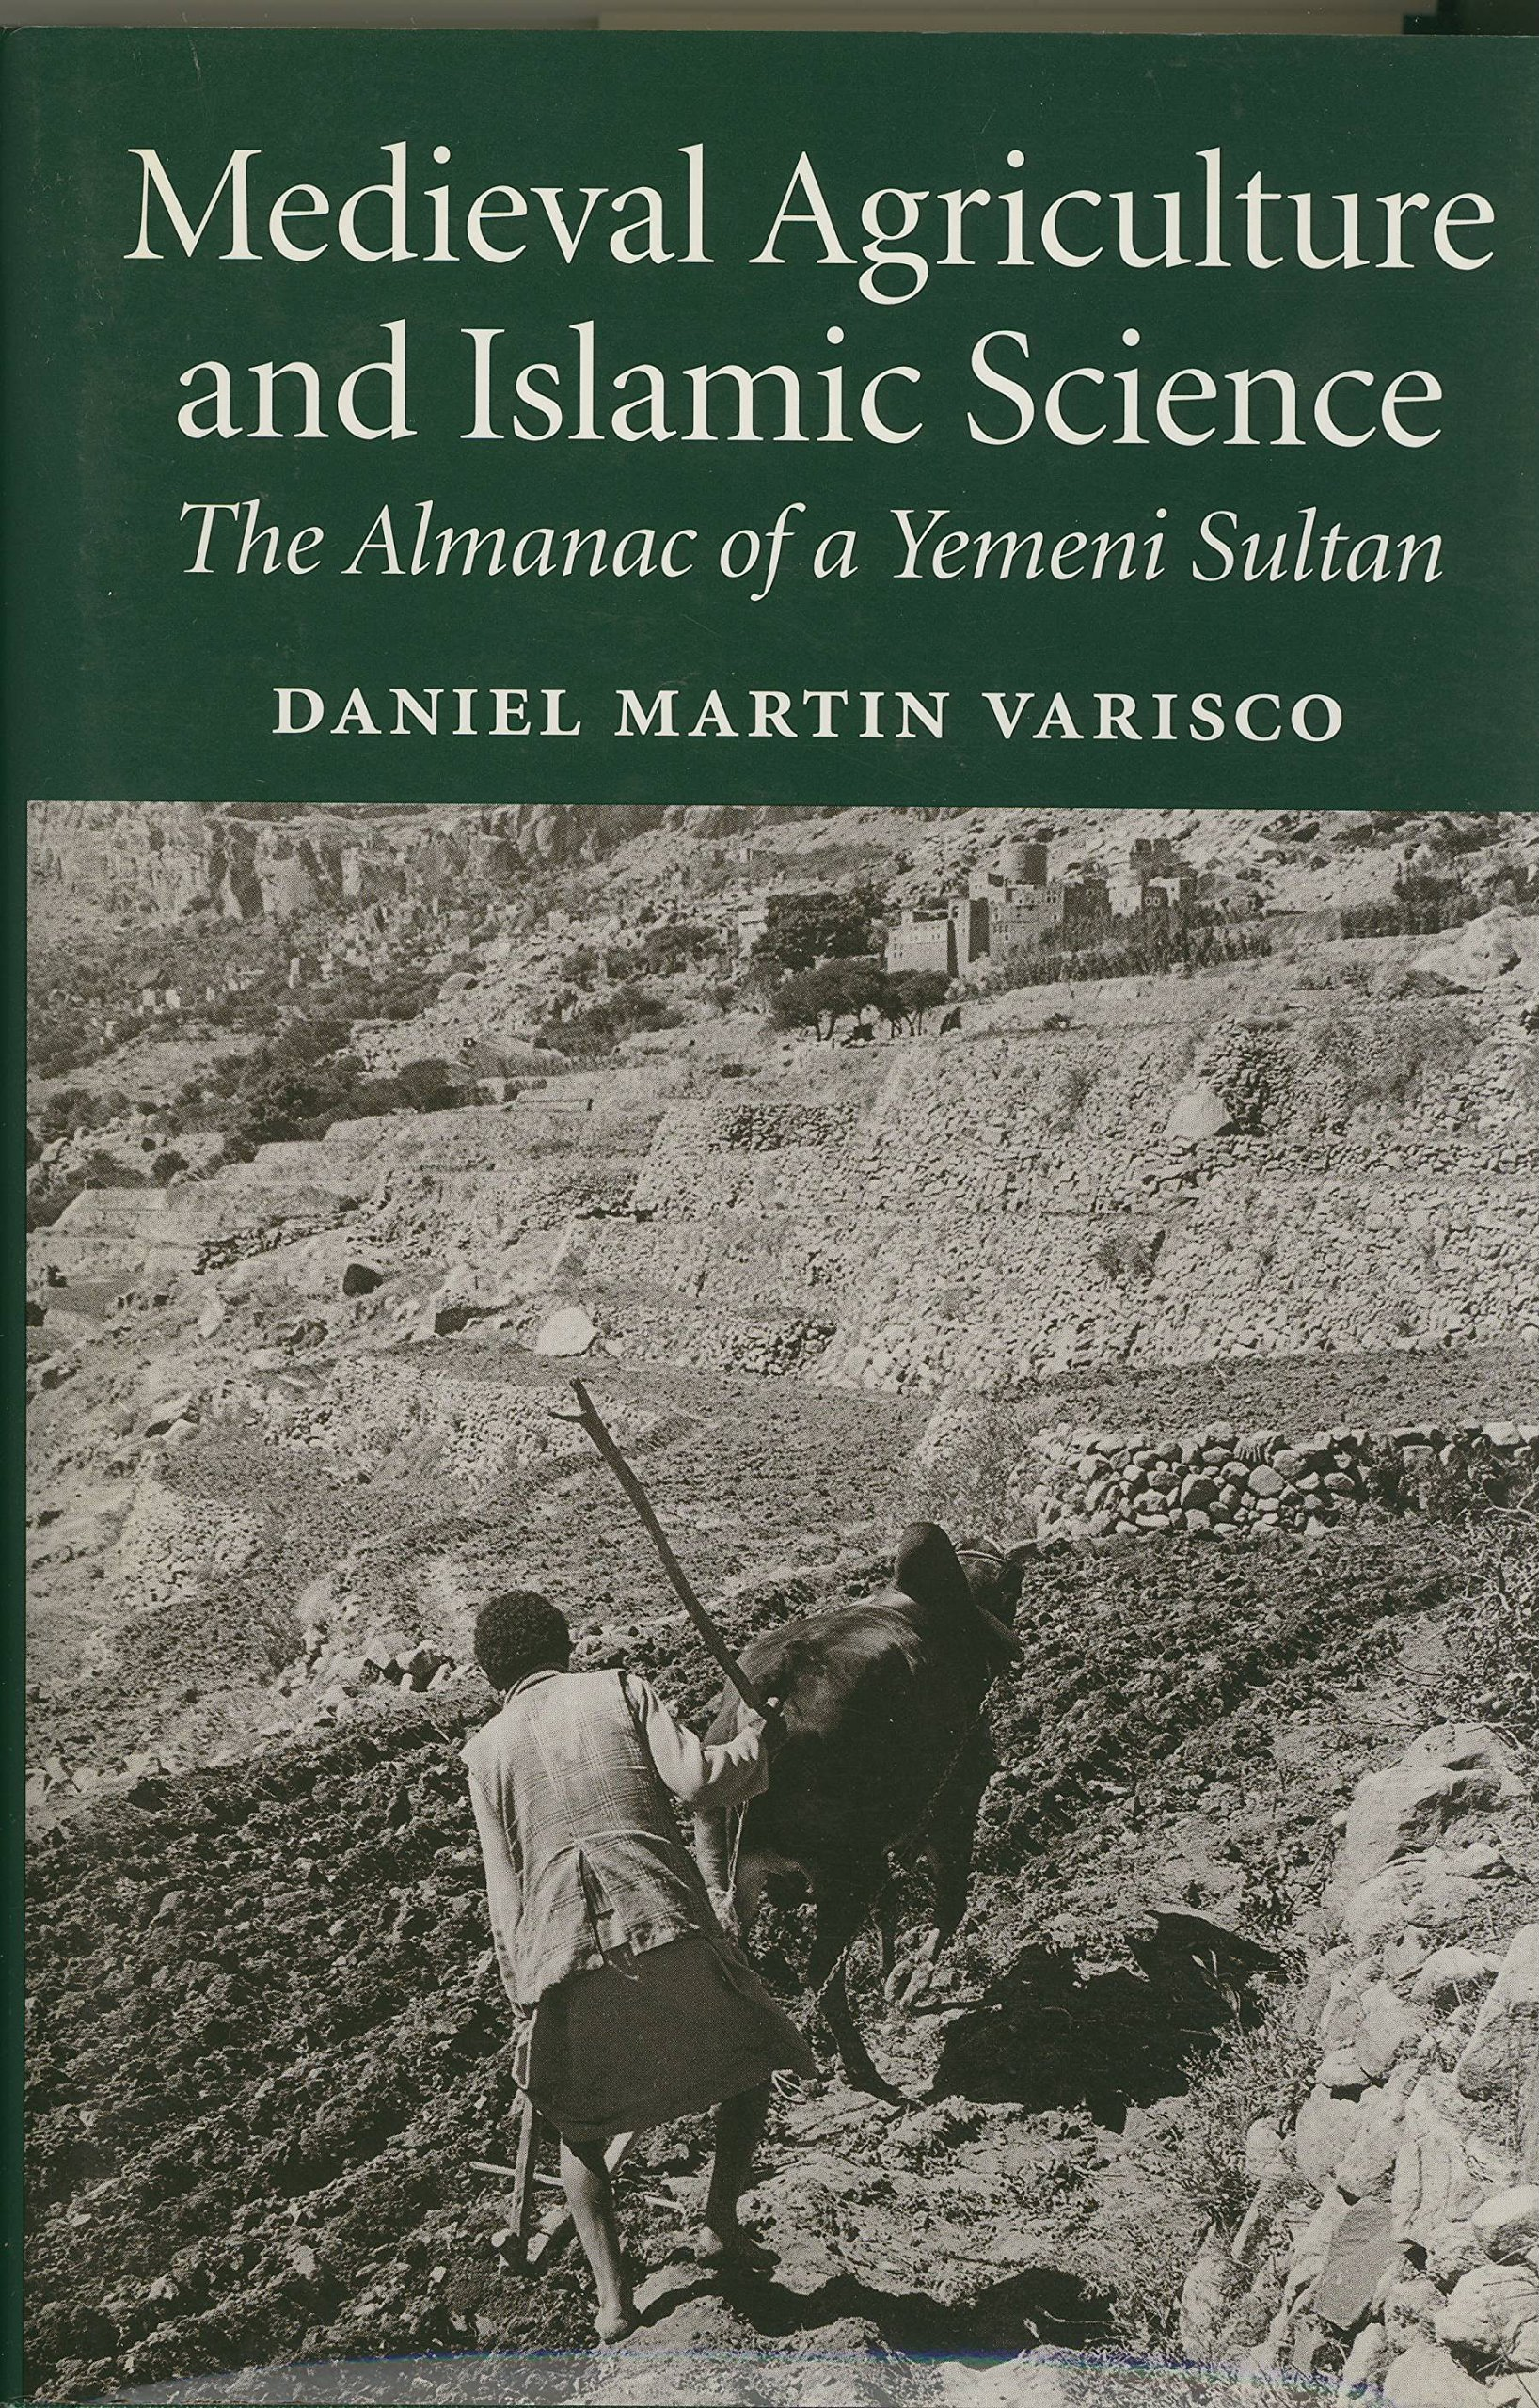 Medieval Agriculture and Islamic Science: The Almanac of a Yemeni Sultan (Publications on the Near East) por Daniel Martin Varisco